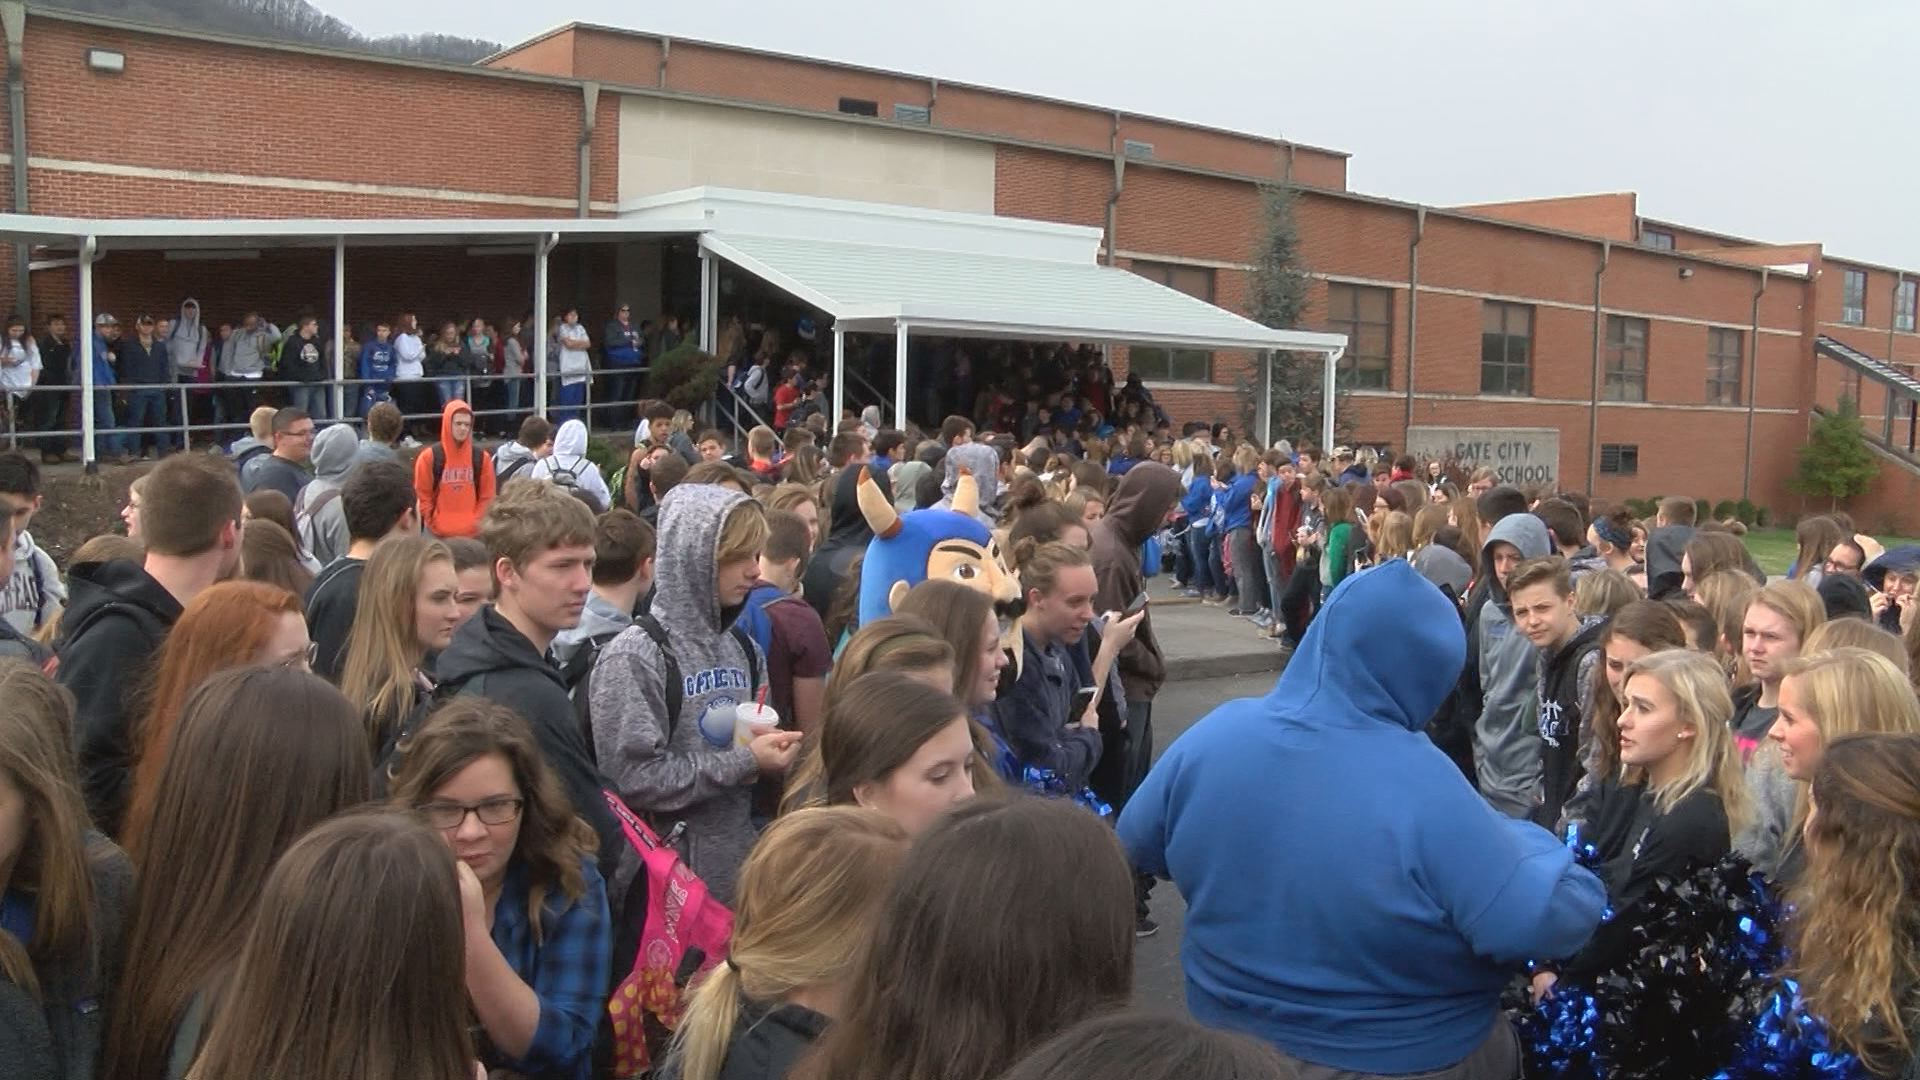 Hundreds of fans show up to send-off the basketball team.